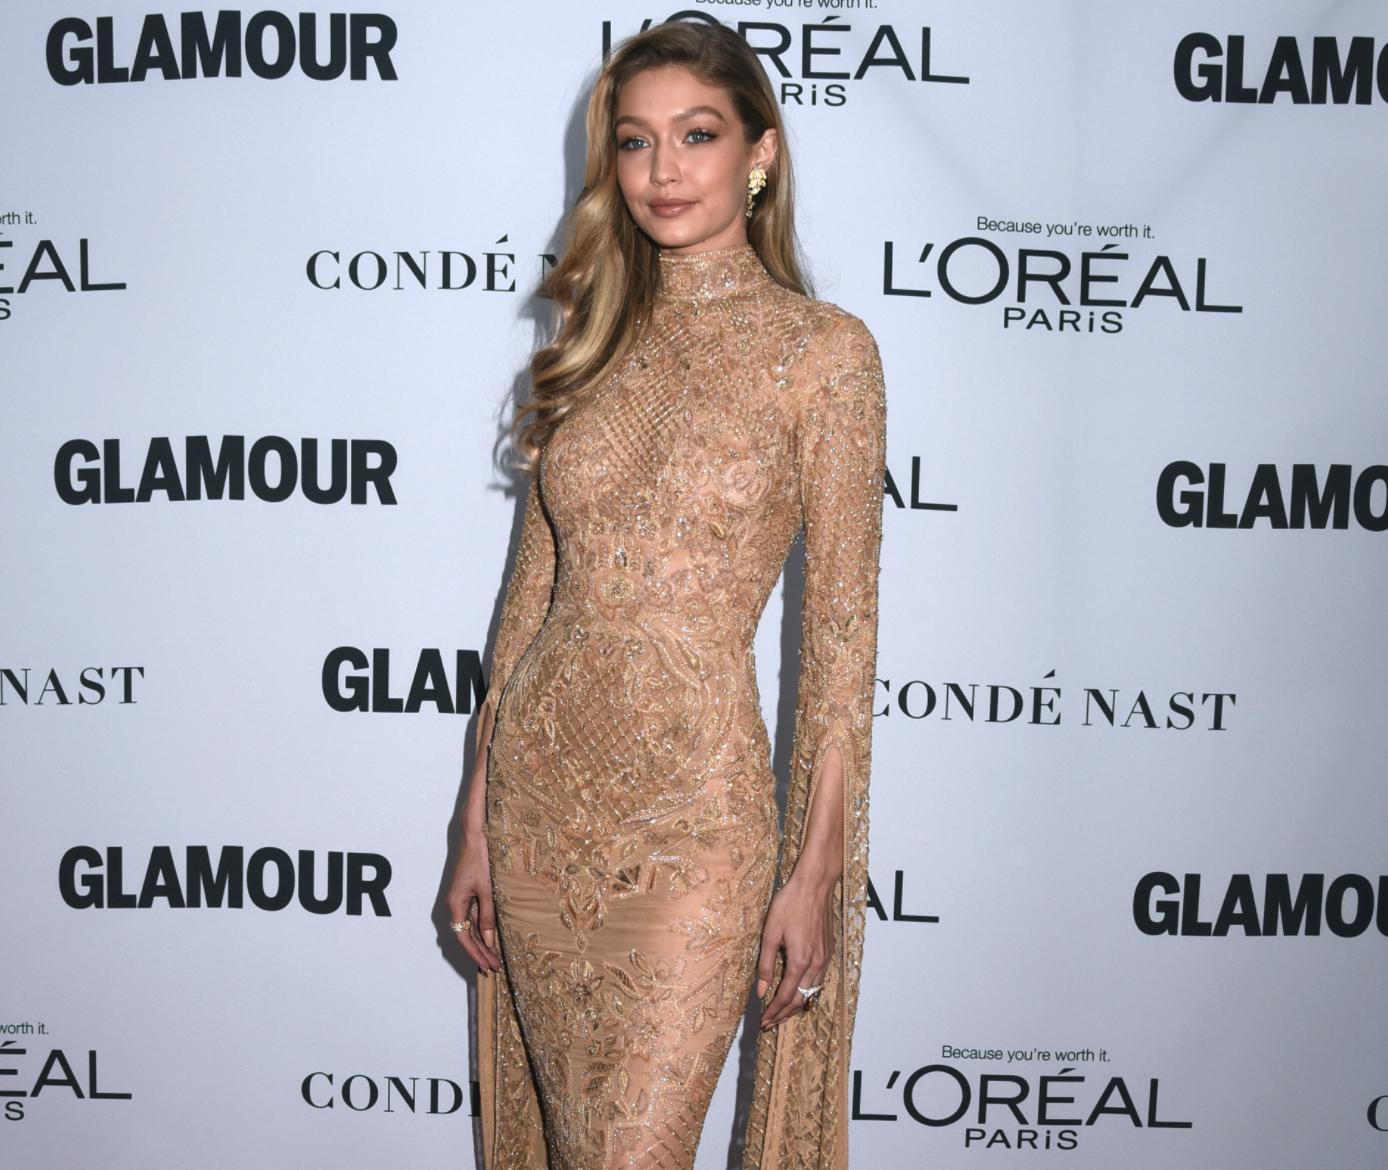 Gigi Hadid Leaves Little to the Imagination in Her Skin Tight Dress